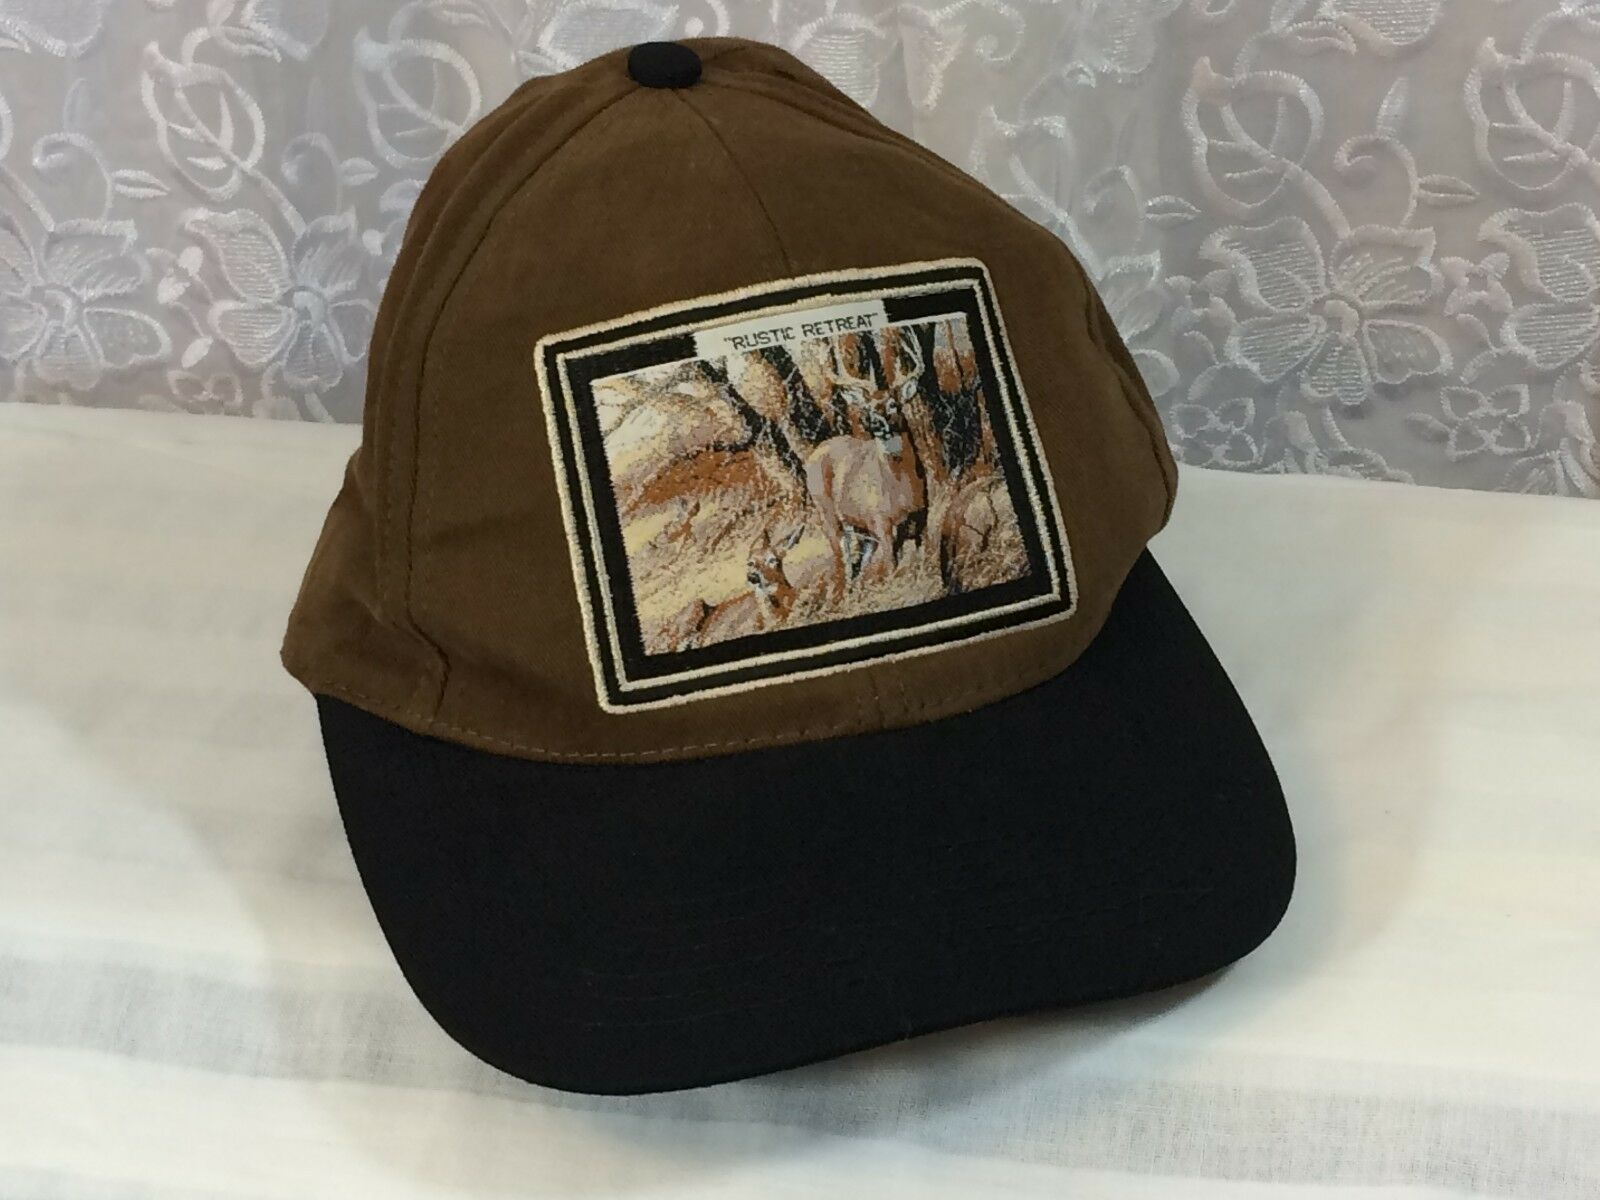 Deer Buck Head Patch Size Cap Baseball Hat One Size Patch Hunting Fishing Adjustable USA 25e261